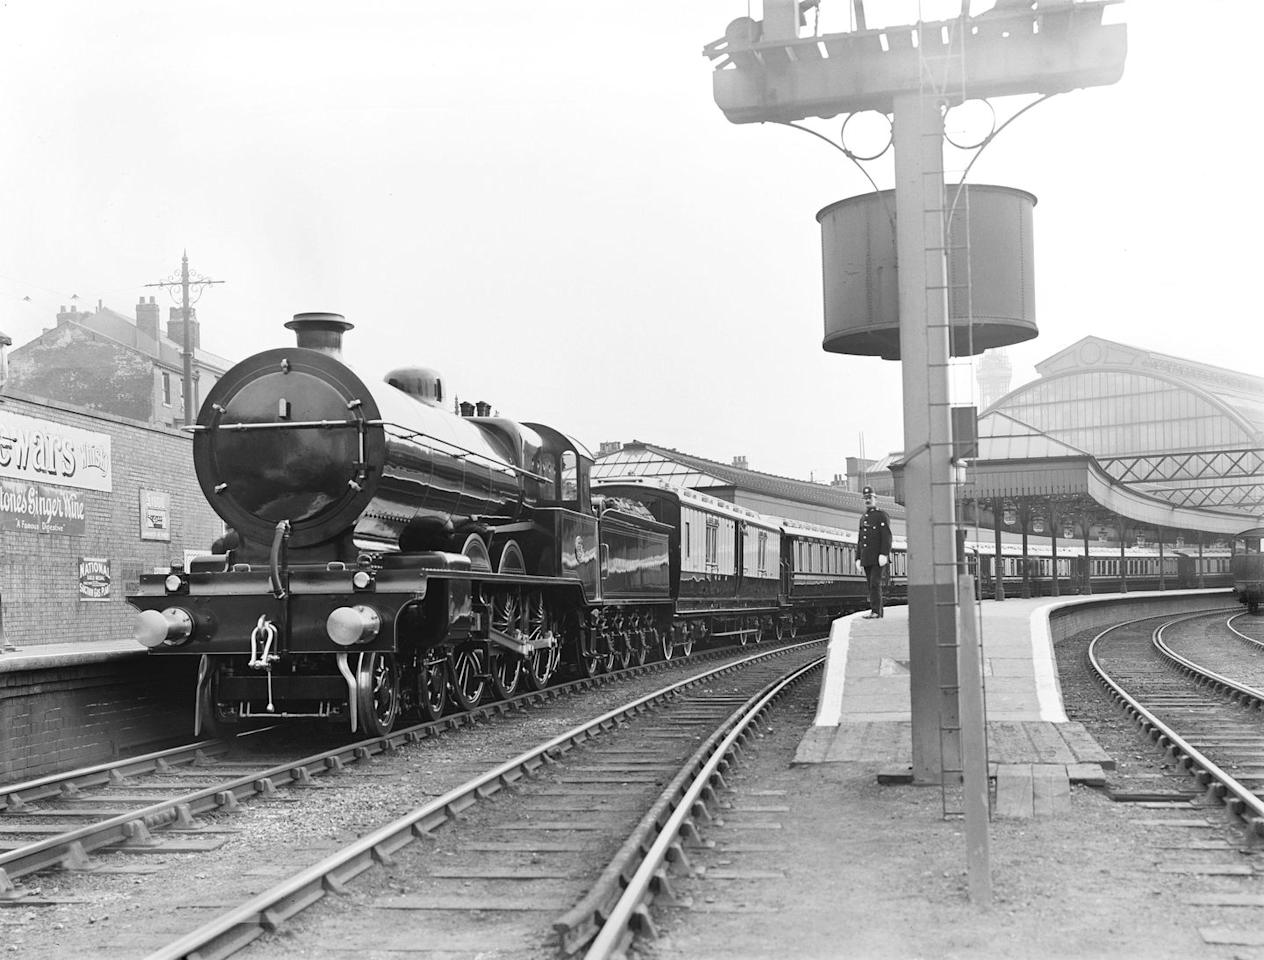 <p>Back before the 1840s, Queen Victoria was not a fan of travelling by coach while on tour. Enter: the royal train. This is what it looked like when it carried King George V and Queen Mary to Blackpool, as part of their tour of the North West of England.</p>